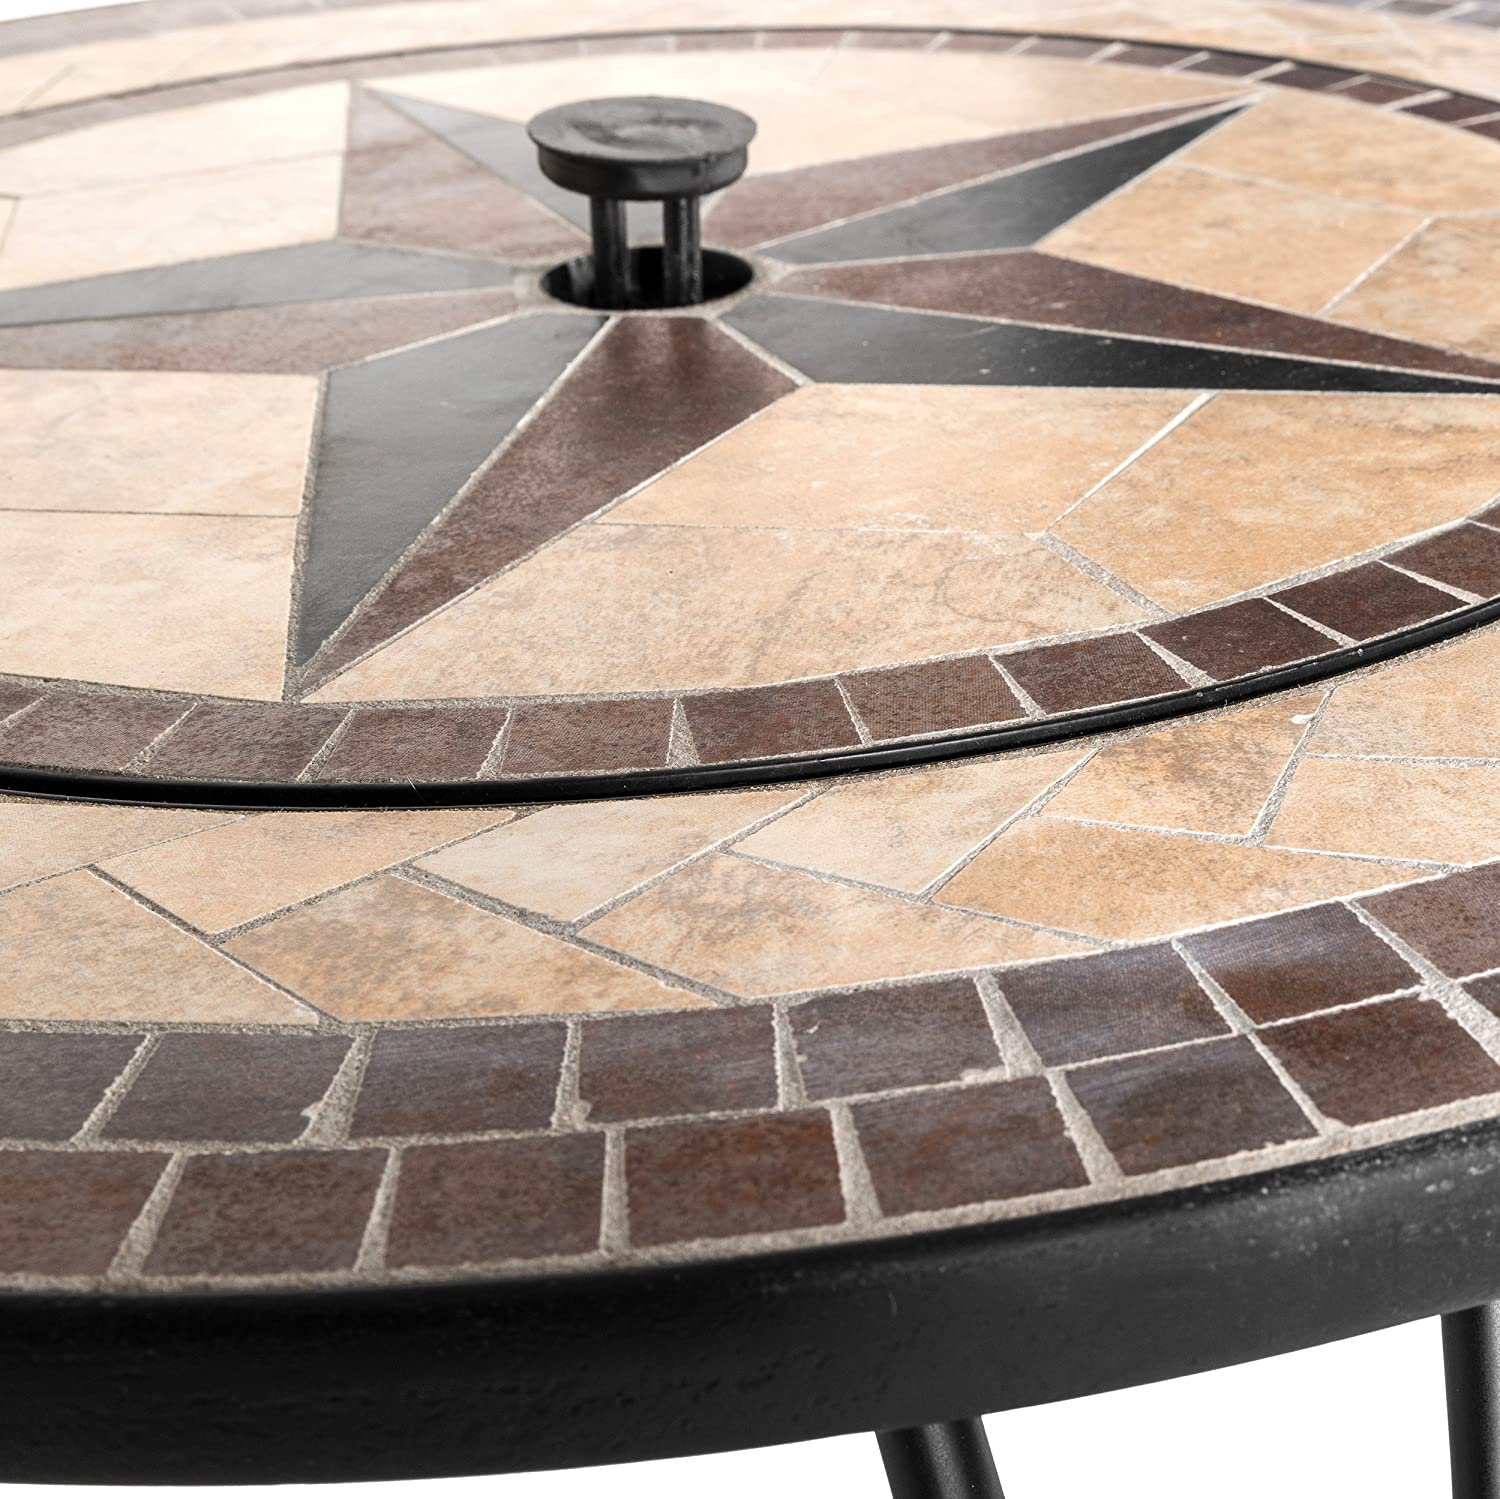 Mari Garden   Vigo 76cm Round Outdoor Garden Mosaic Coffee Table And Fire  Pit With Chrome BBQ Grill, Mesh Lid And Rain Cover Incinerator Log Wood  Burner ...